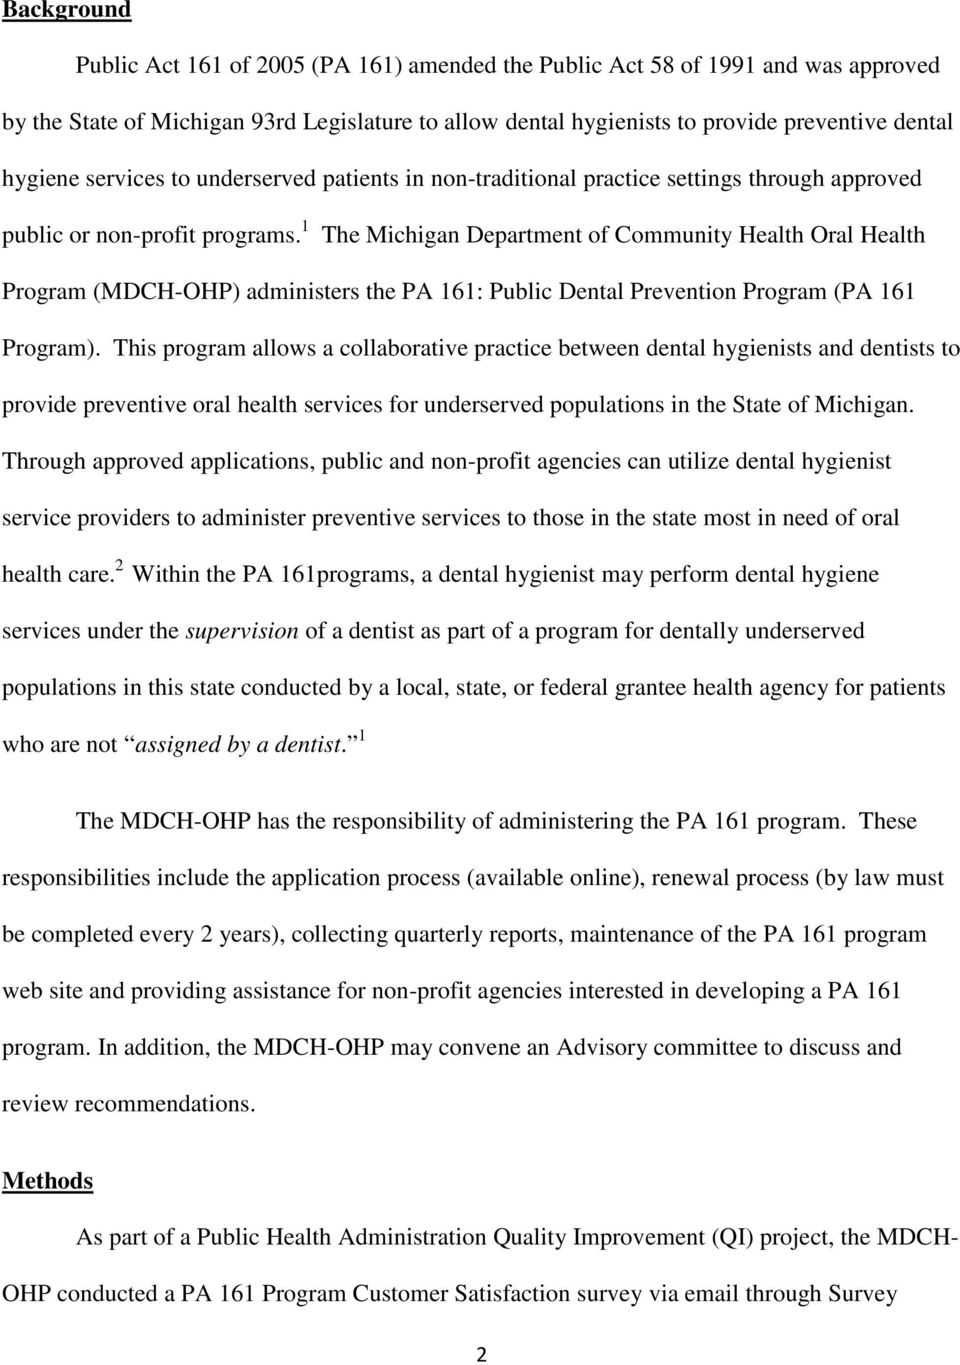 1 The Michigan Department of Community Health Oral Health Program (MDCH-OHP) administers the PA 161: Public Dental Prevention Program (PA 161 Program).